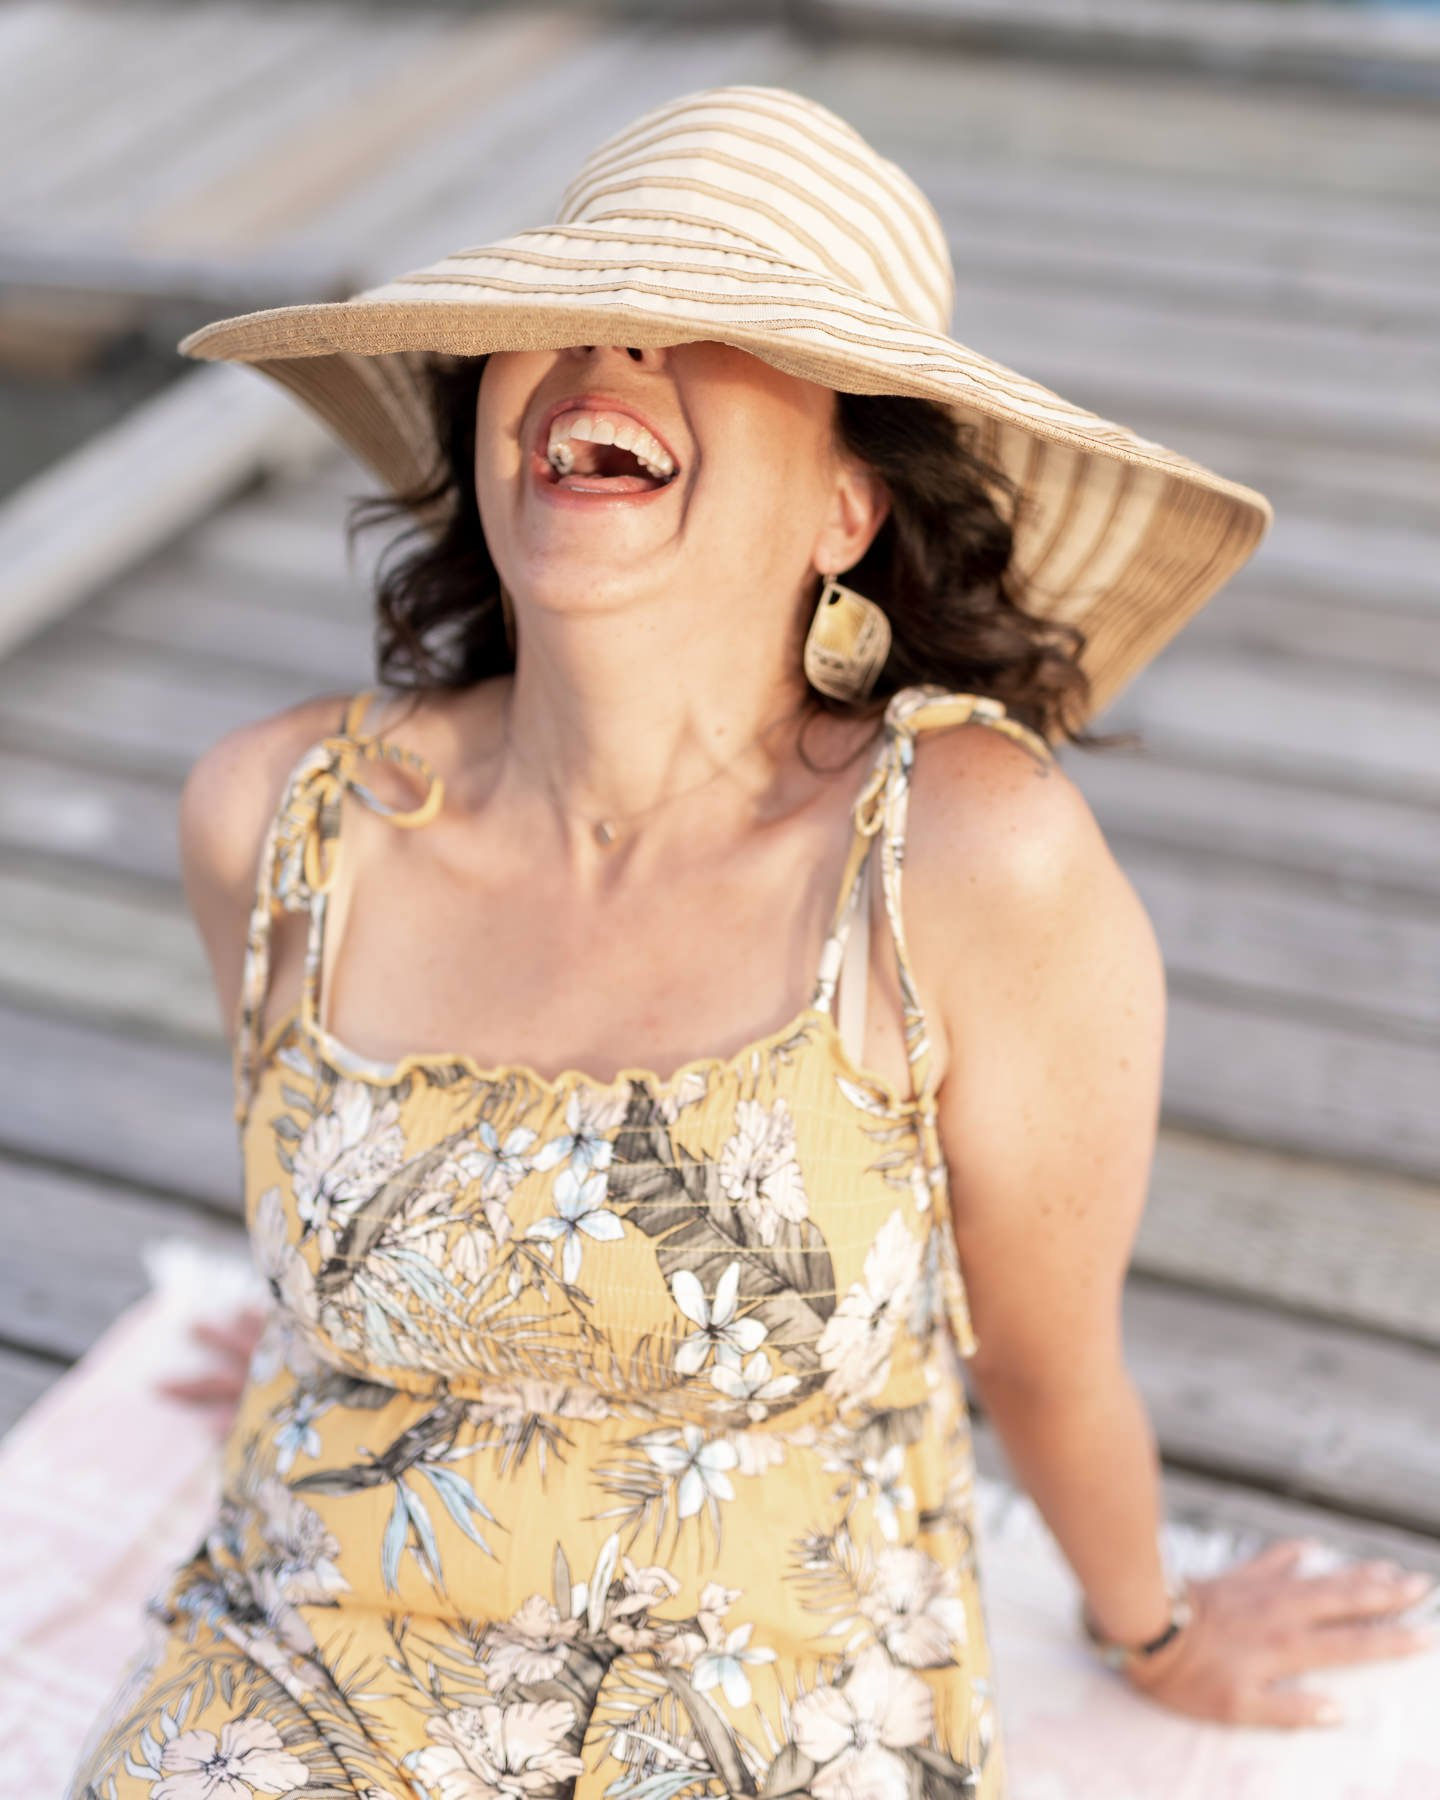 laughing in a hat lifestyle photos